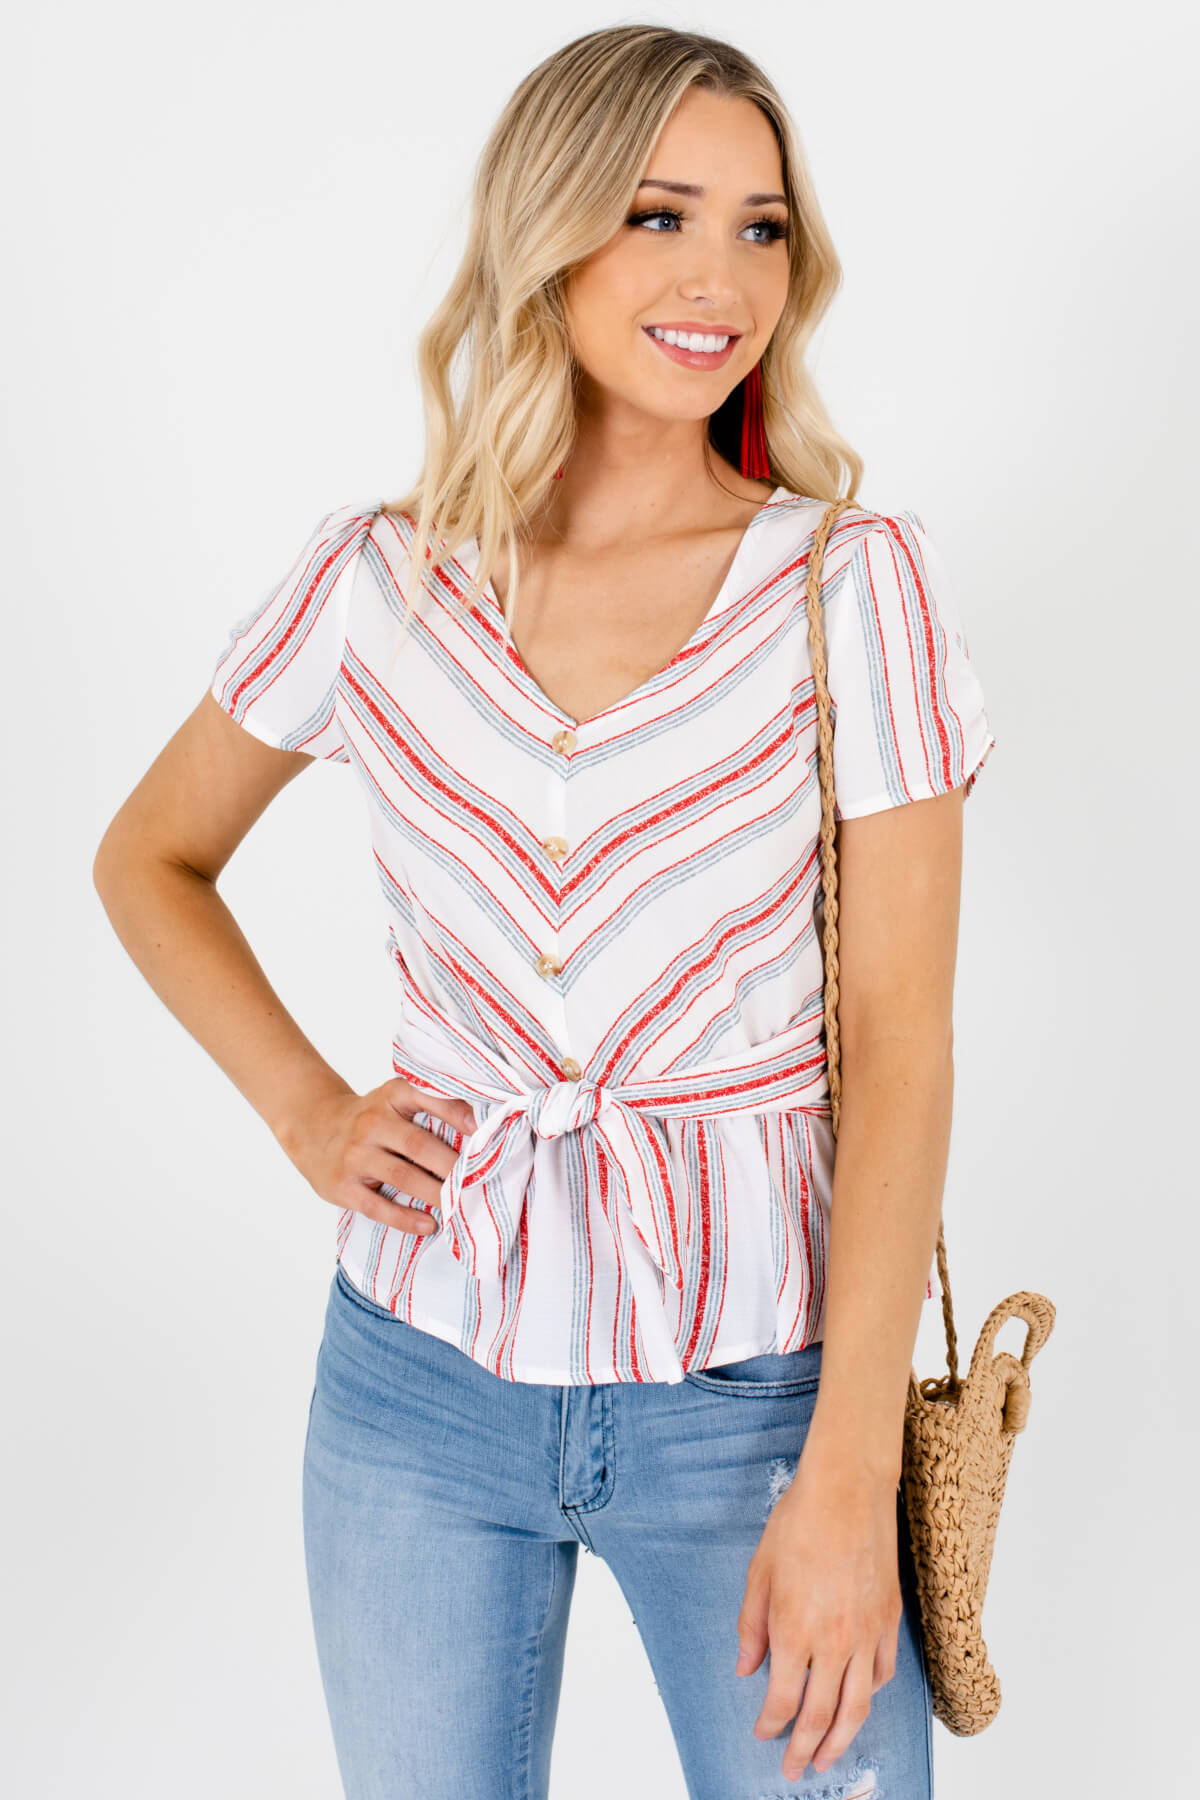 White Multicolored Striped Chevron Patterned Boutique Tops for Women